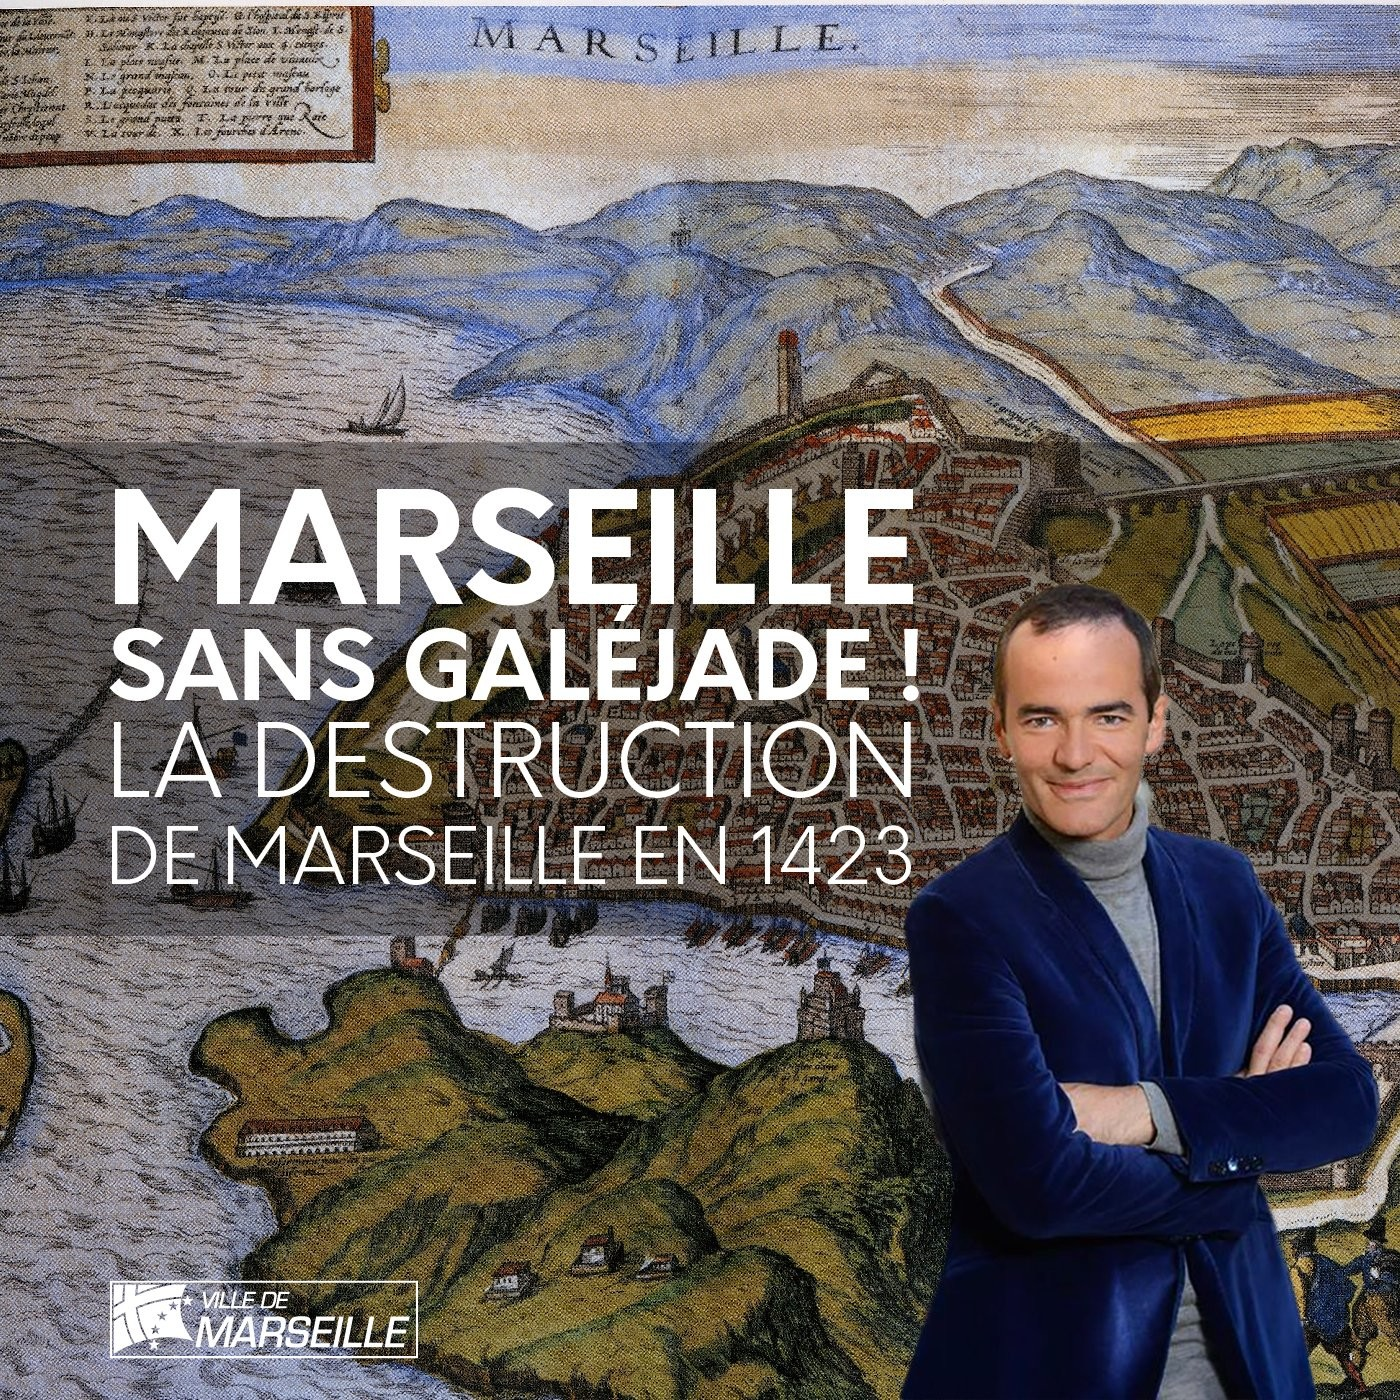 #5 - La destruction de Marseille en 1423